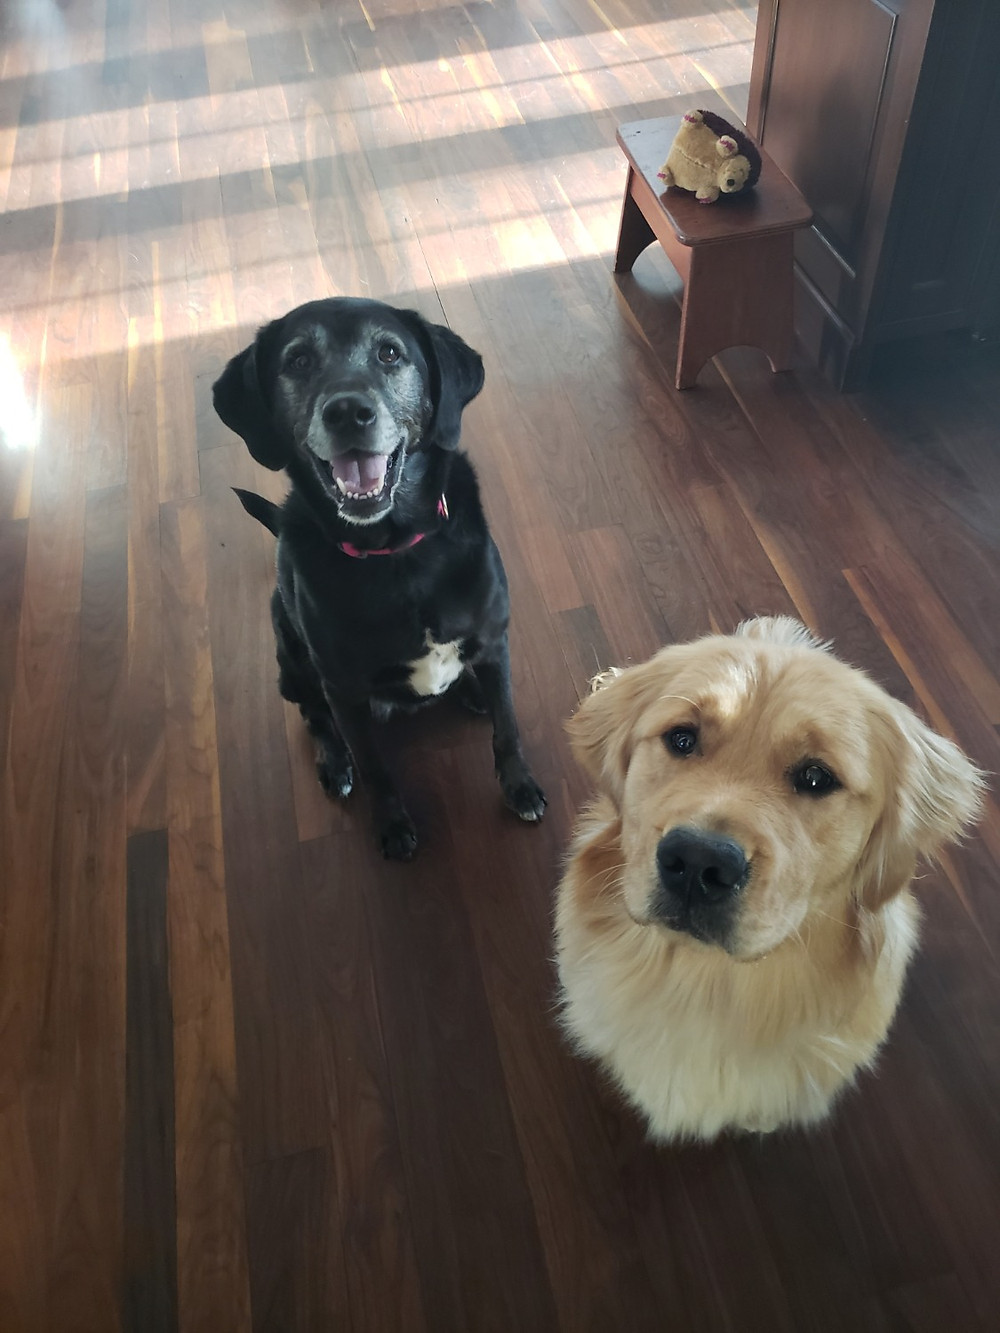 Two pet dogs sitting for their dog walker